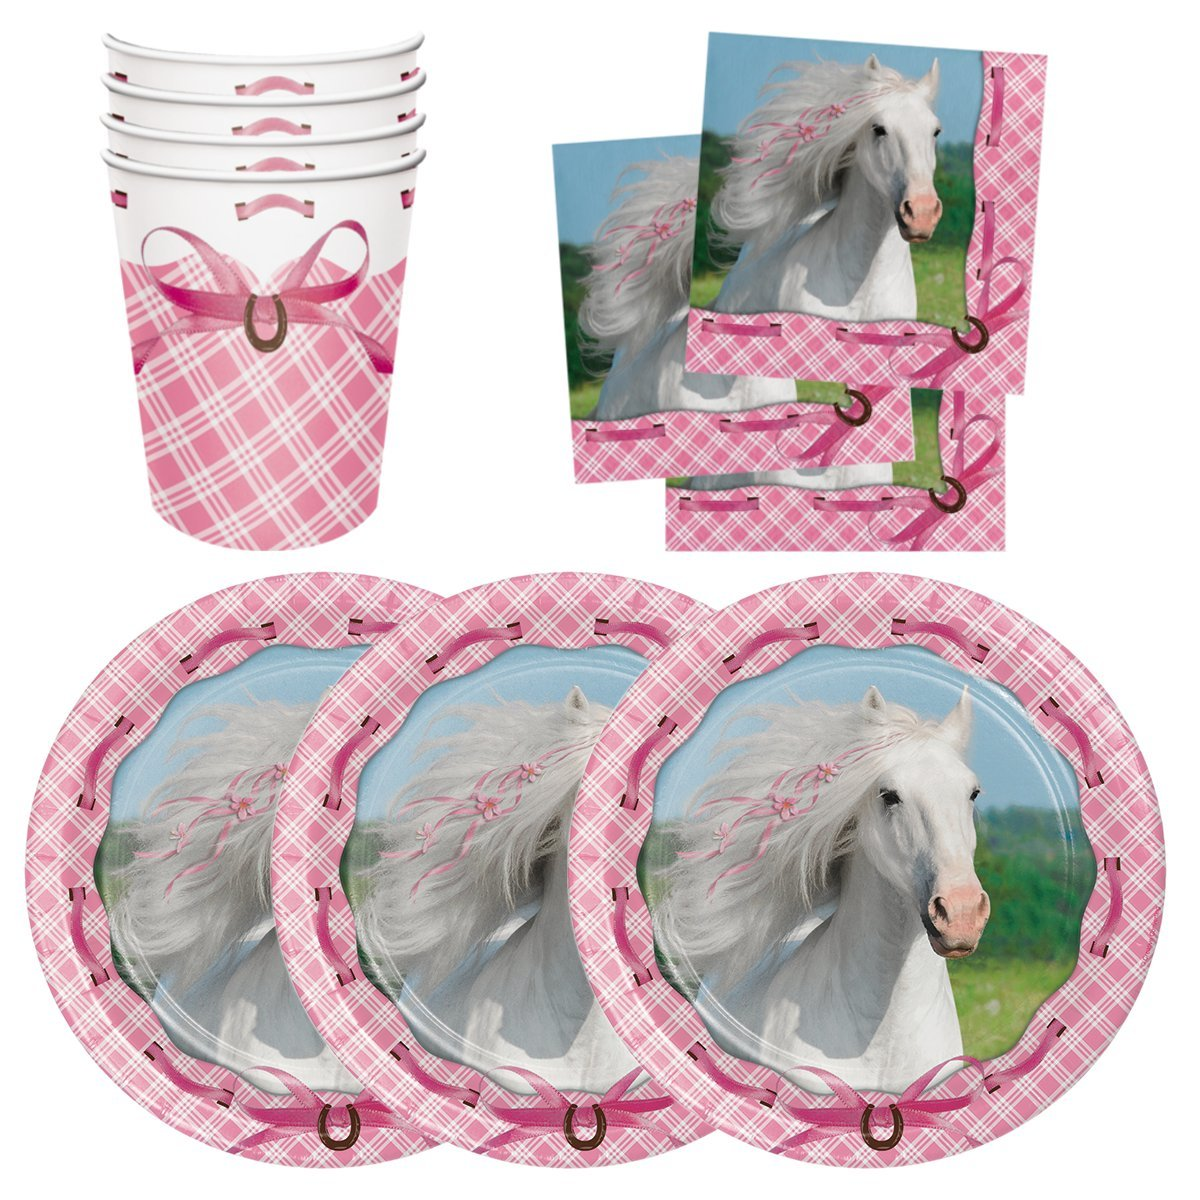 Lovely Pink Horse Birthday Party Supplies Set Plates Cups Napkins Tableware Kit for 16 Guests by PCBS Parties Can Be Simple